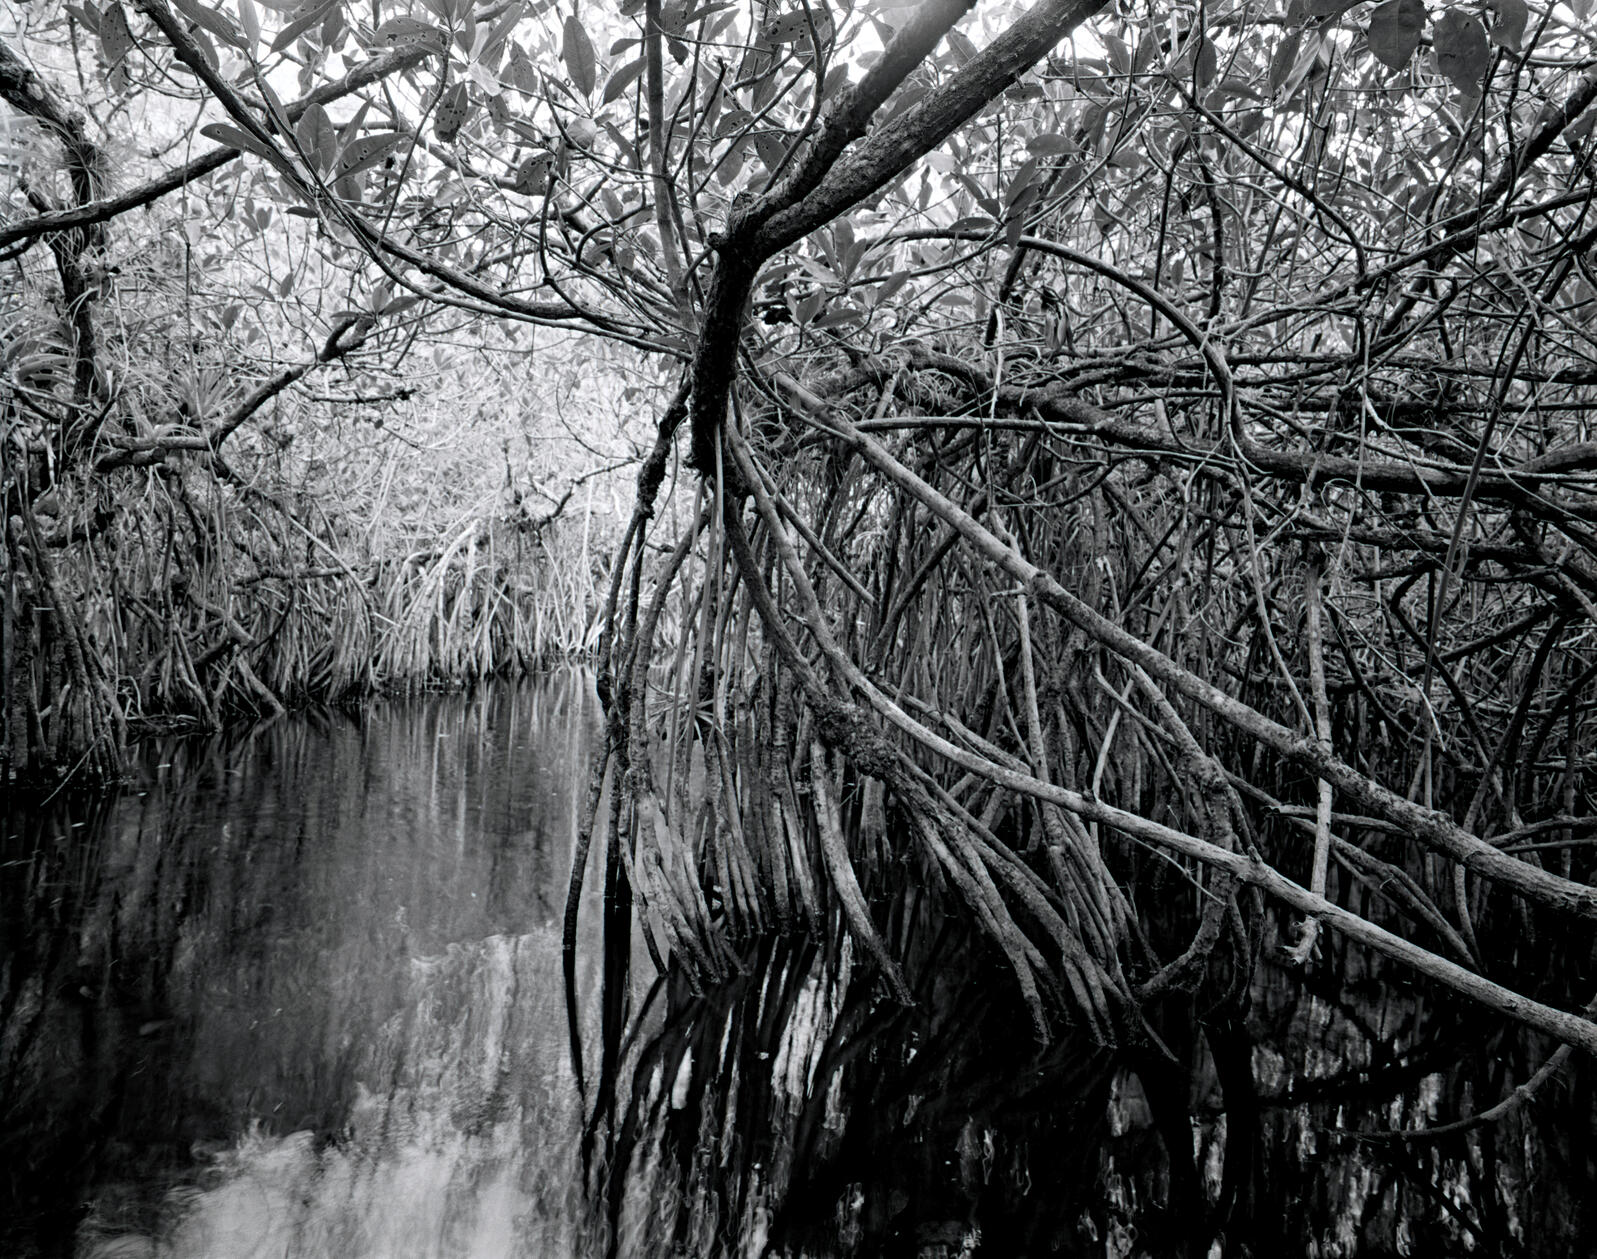 A tunnel formed by red mangroves provides a channel that is likely used by alligators and perhaps an occasional endangered American crocodile. South Florida is the species' last redoubt in this country. Diane Cook & Len Jenshel